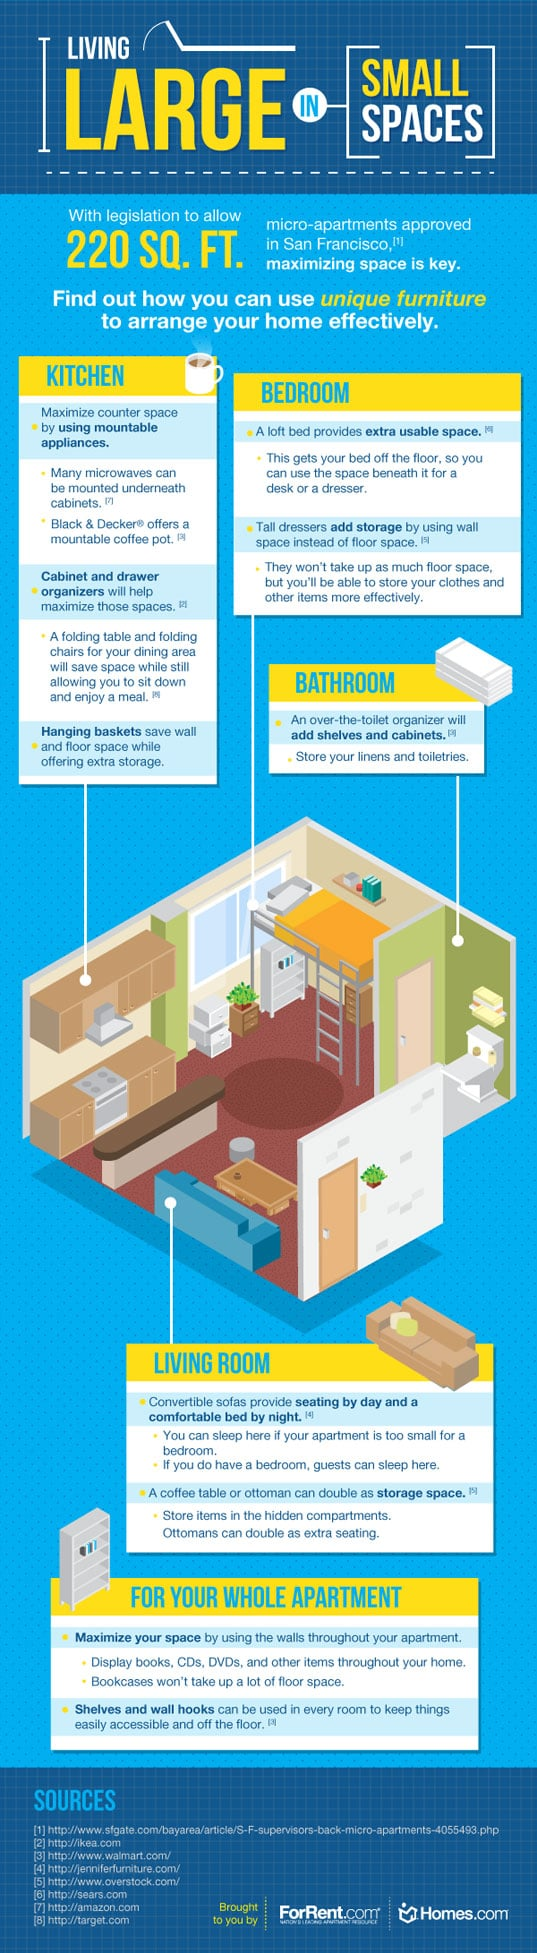 small space living tips